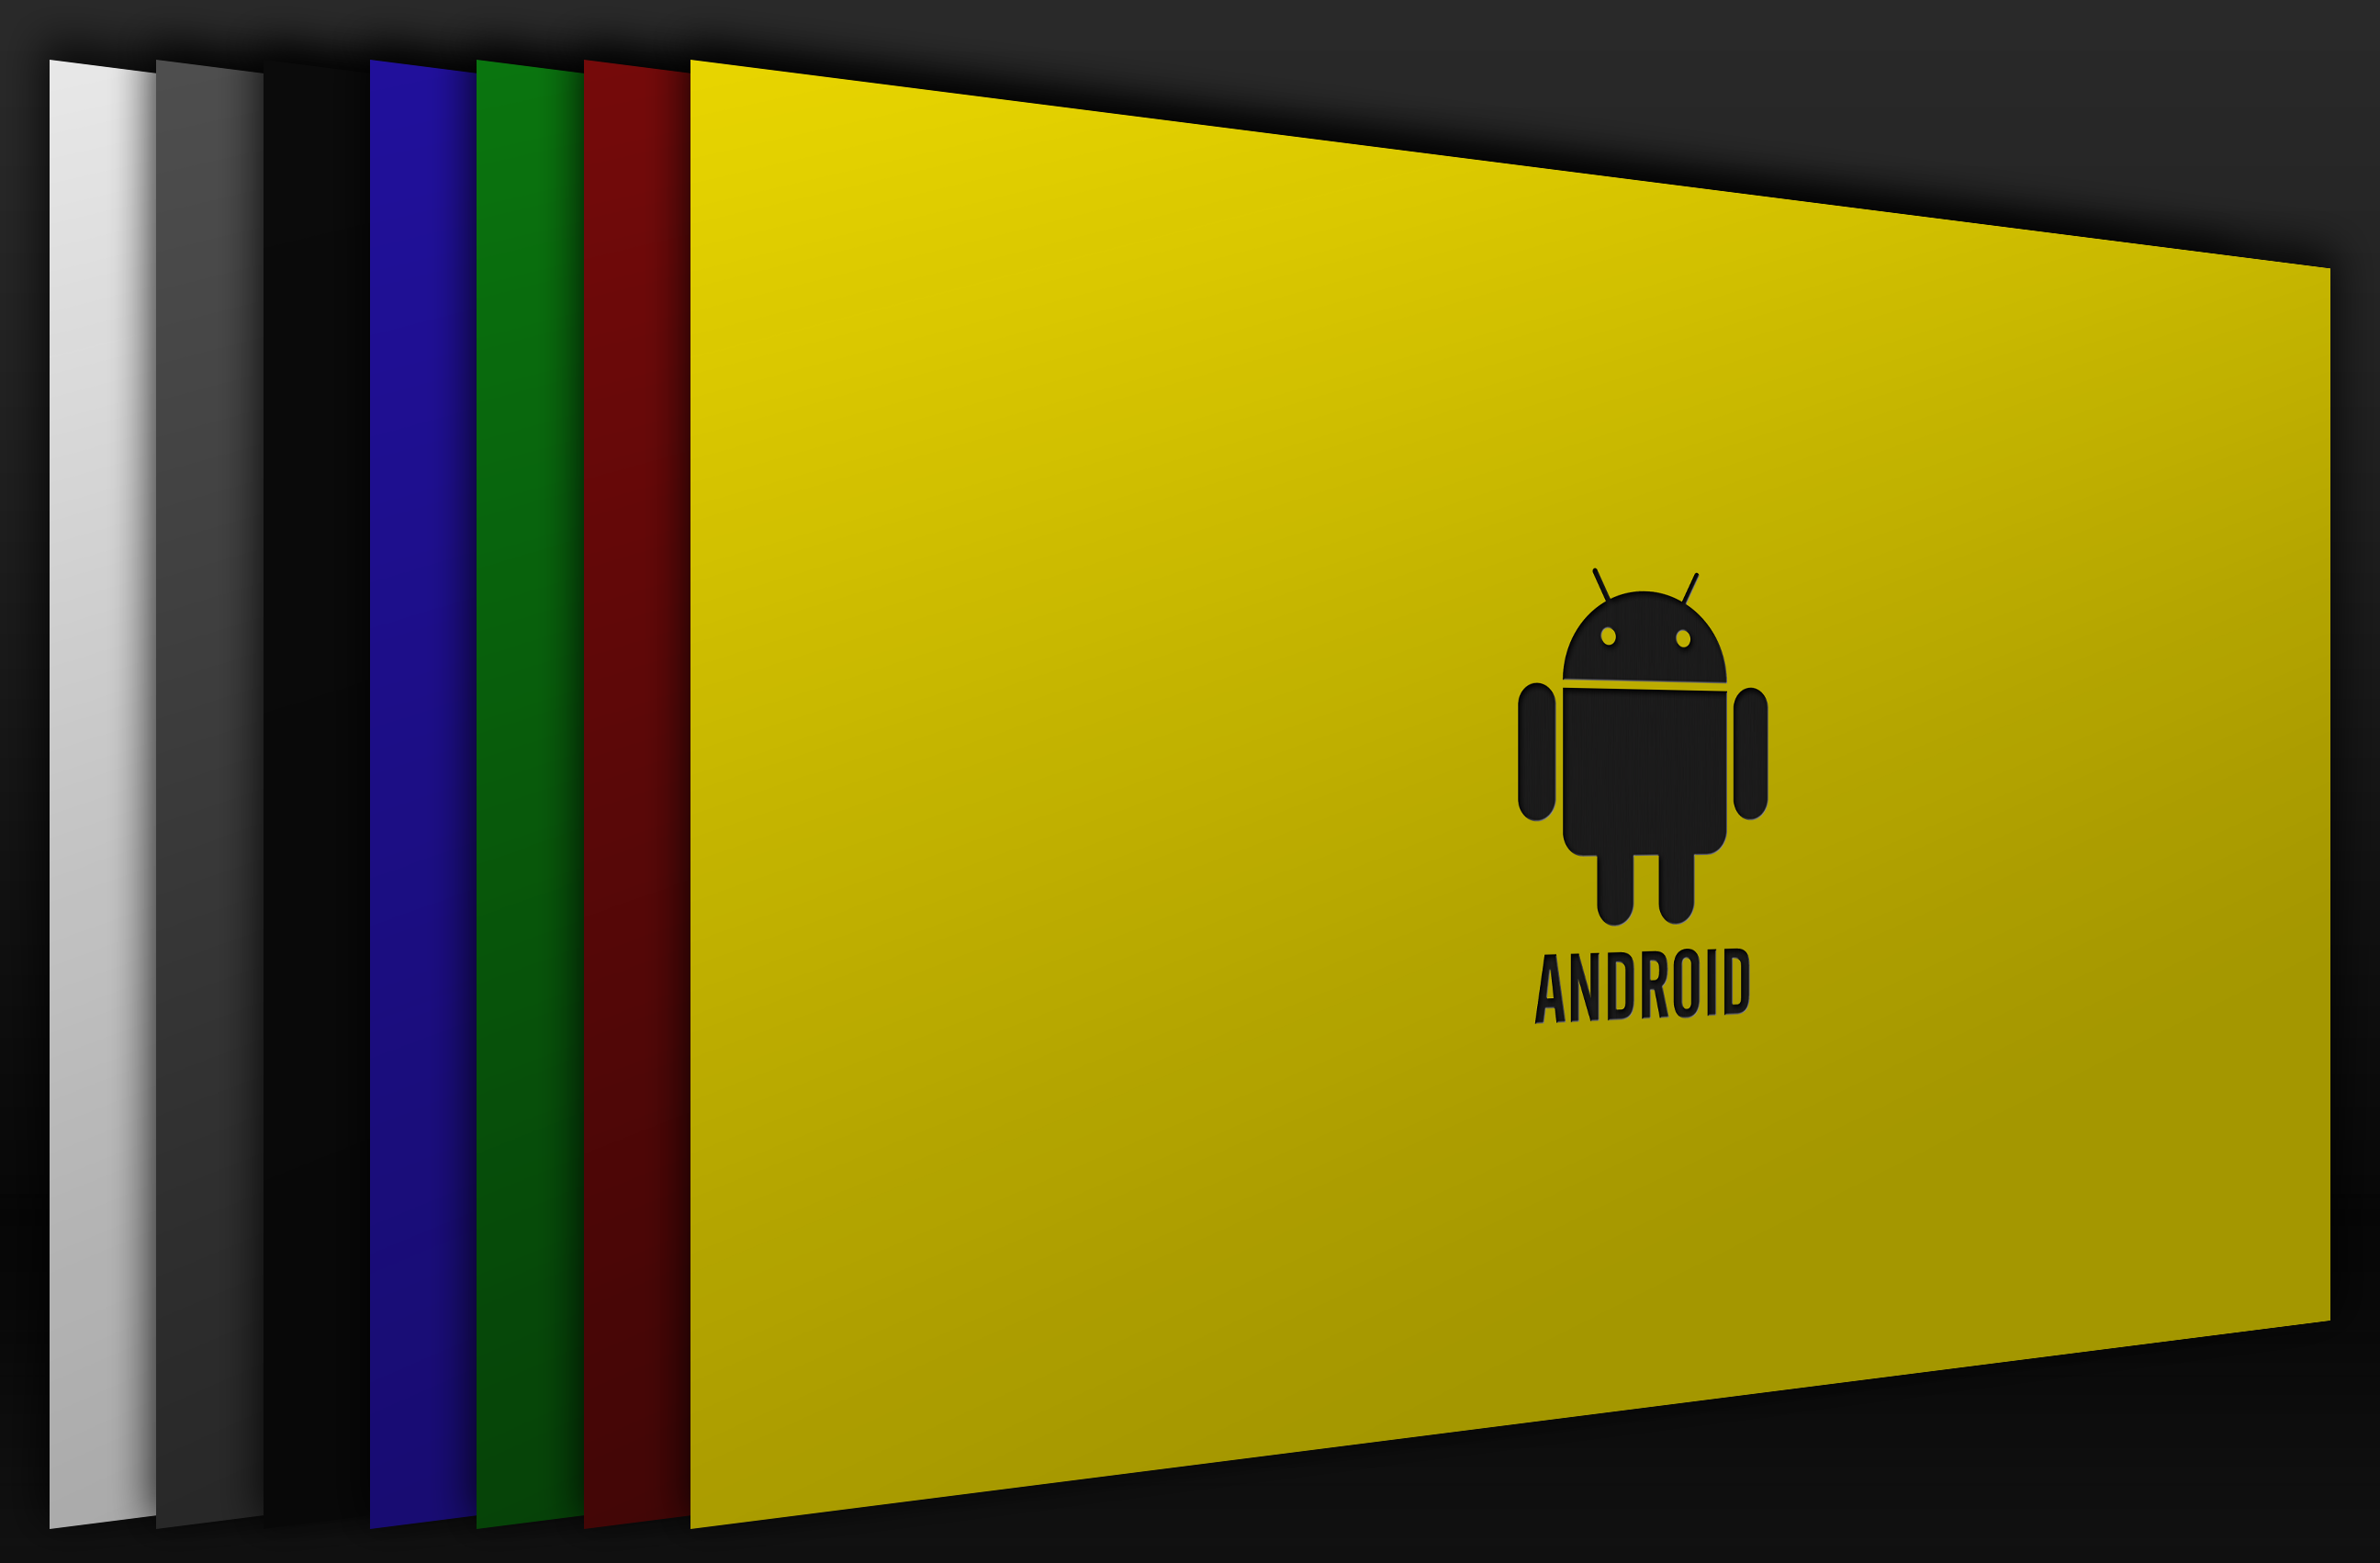 android wallpaper n1 by erickx android wallpaper n1 by erickx